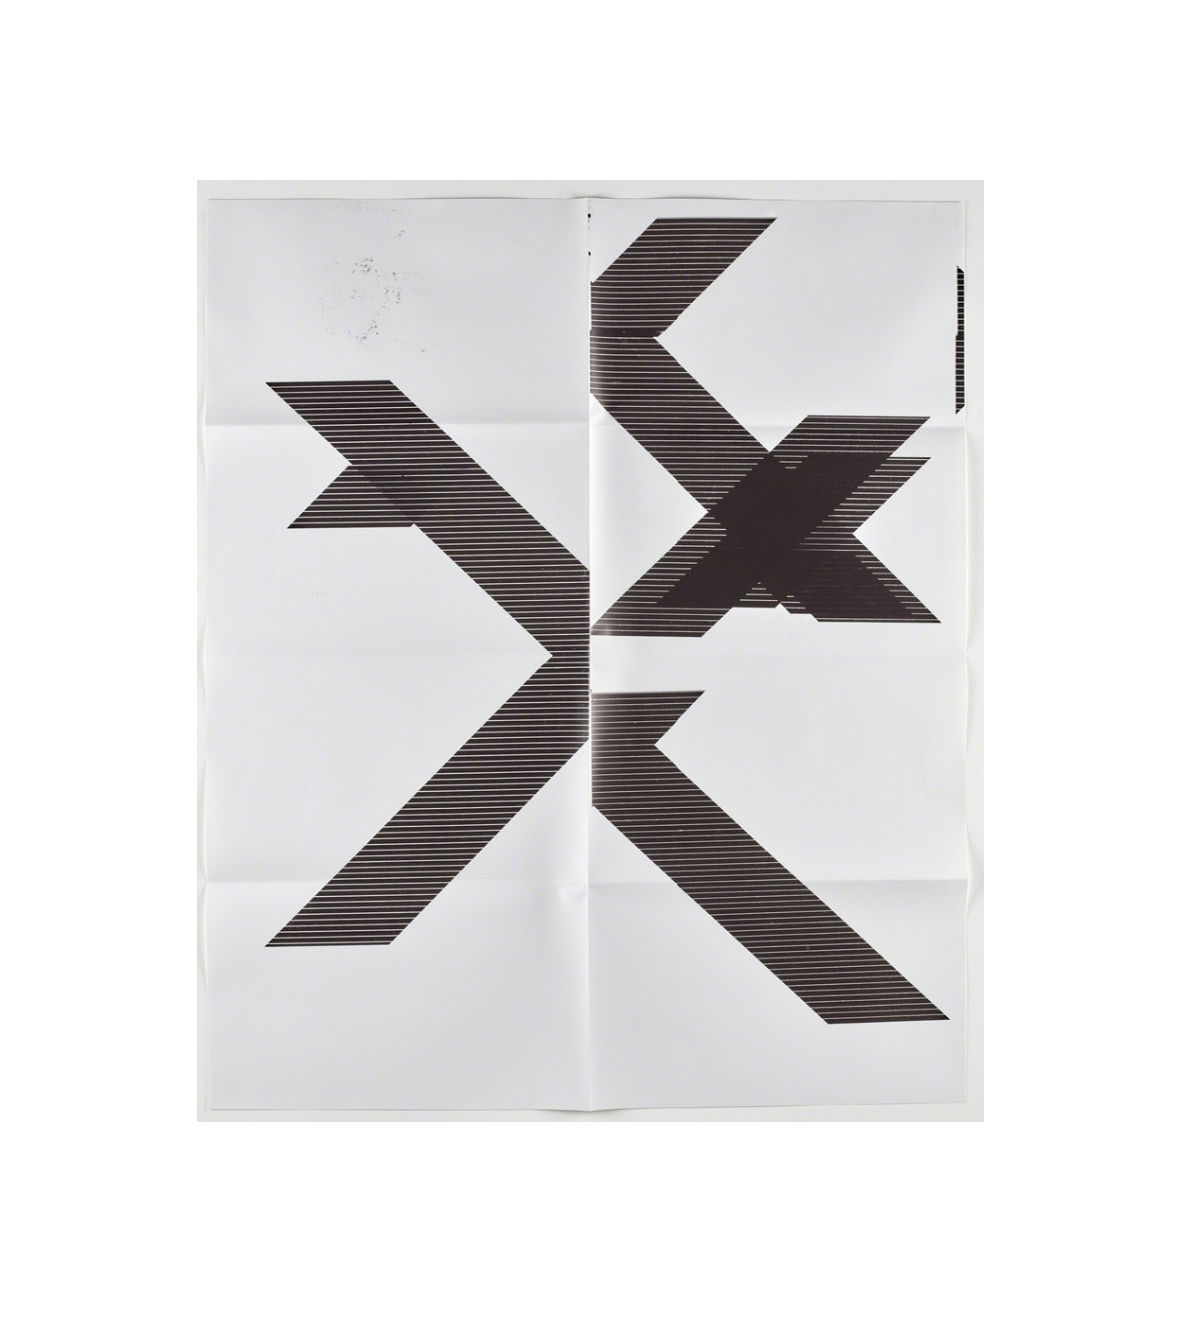 X Poster (untitled, 2007, Epson Ultrachrome Inkjet On Linen, 84 X 69 In, Wg1210) by Wade Guyton